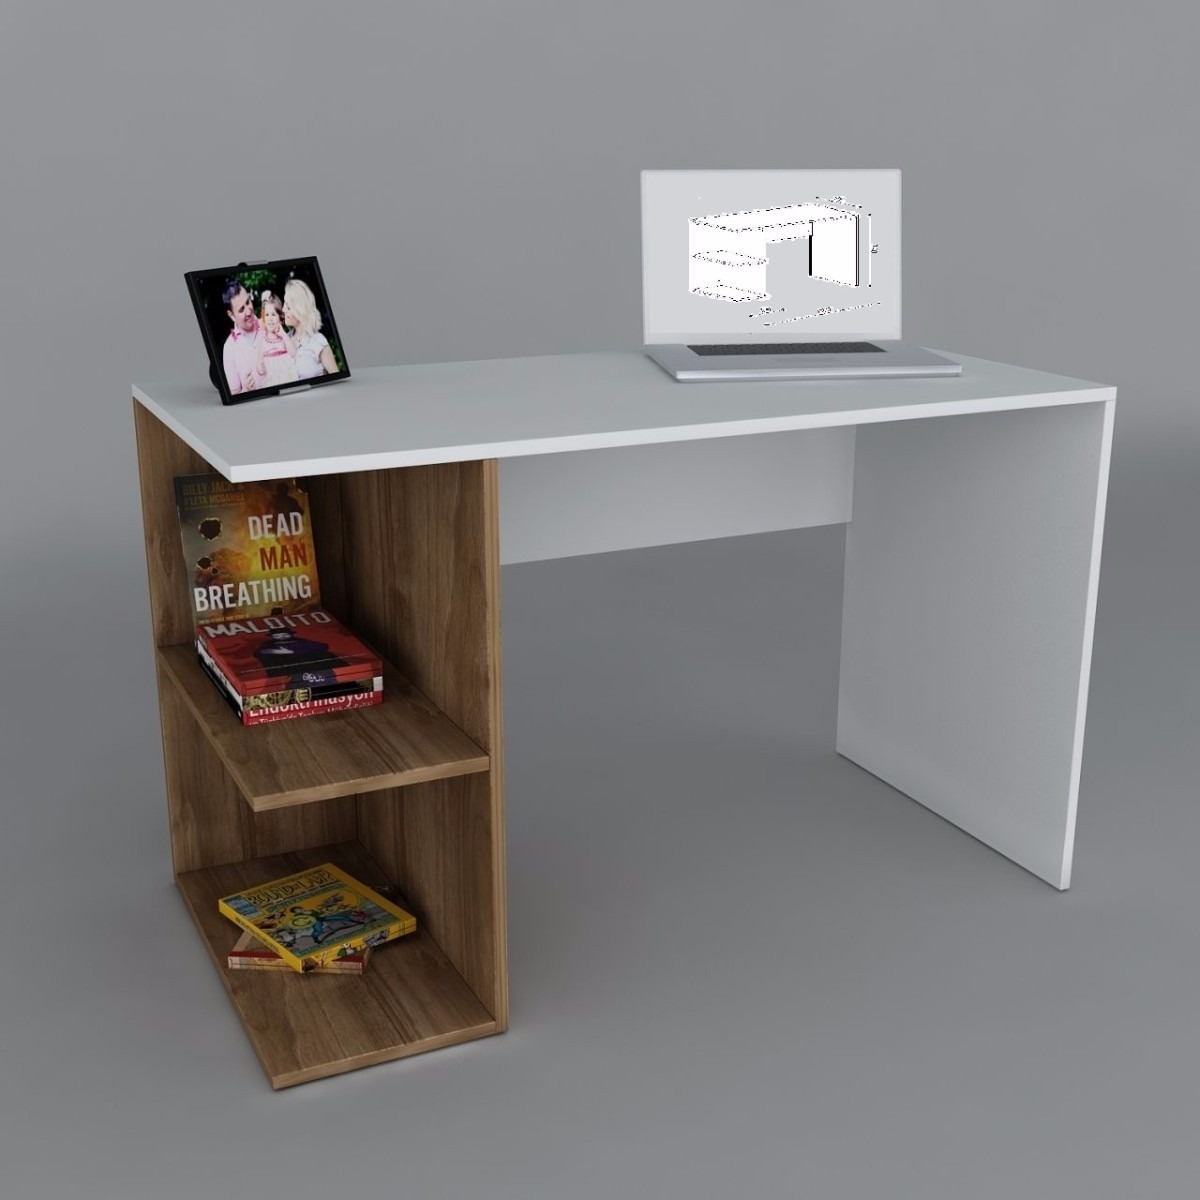 Escritorios modernos minimalistas de alta gama decoracion for Escritorios homecenter